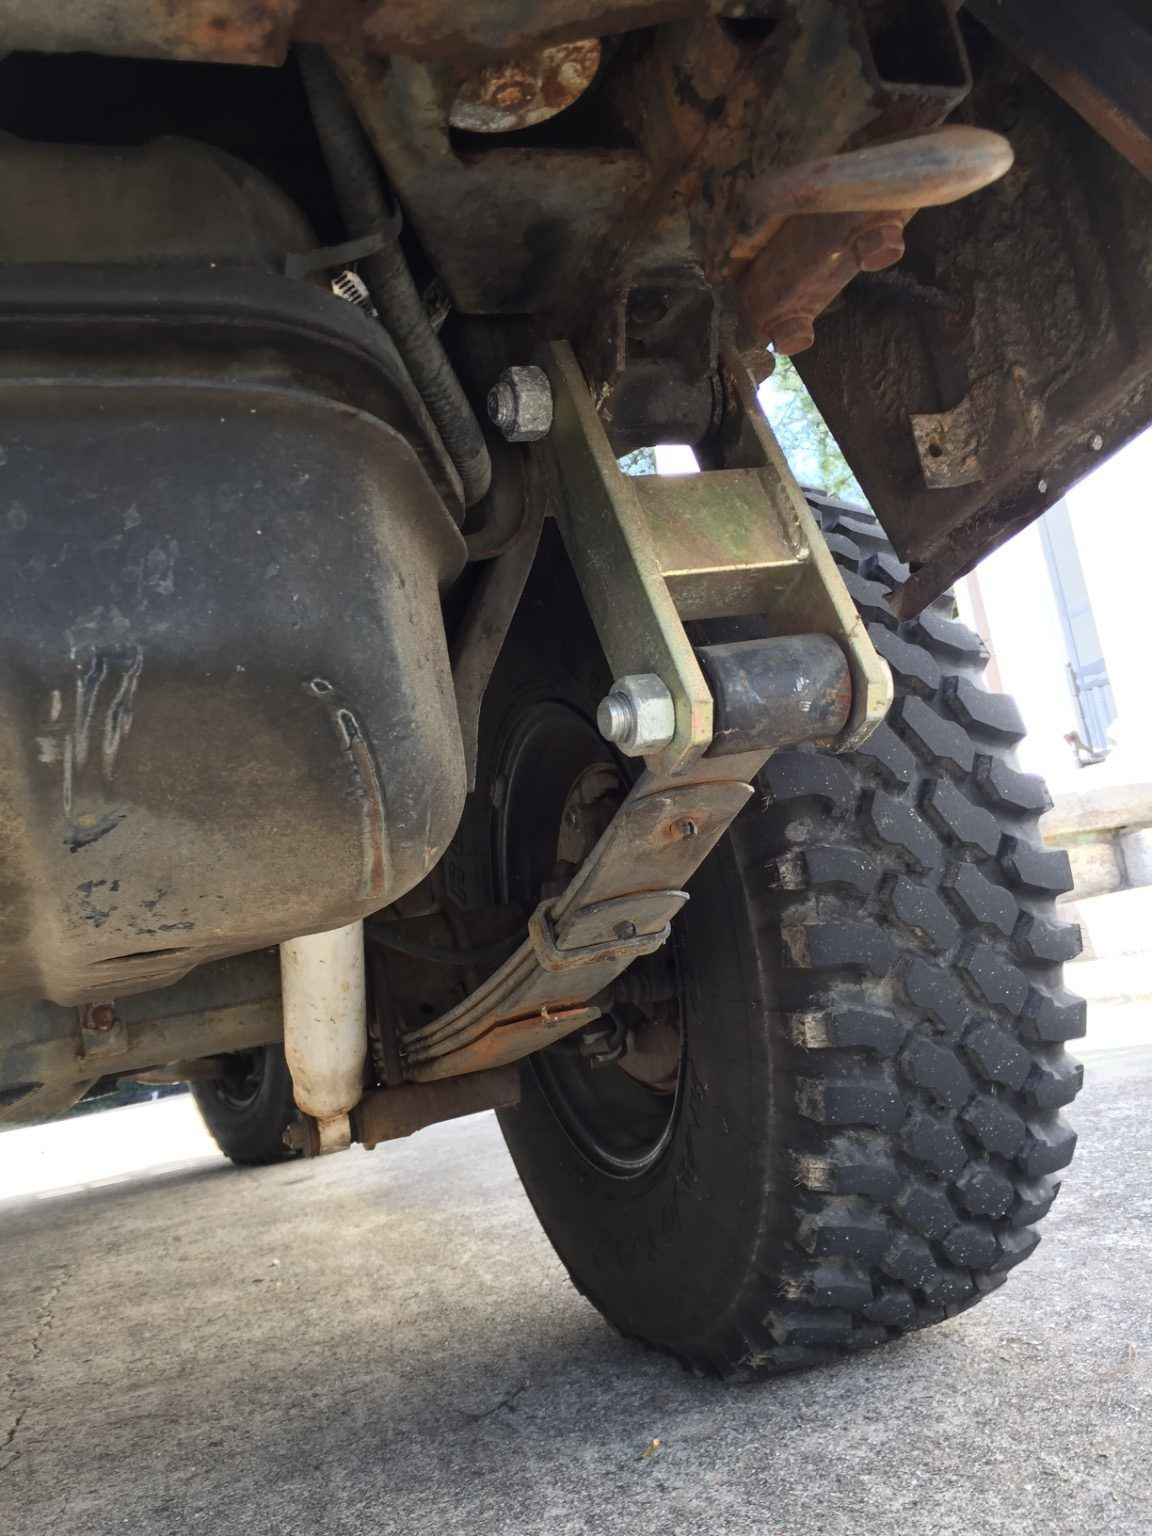 Y Modified Isuzu Para TrooperCaribes 1988 Accesorios Jeep4x4 Igb7Yy6fv